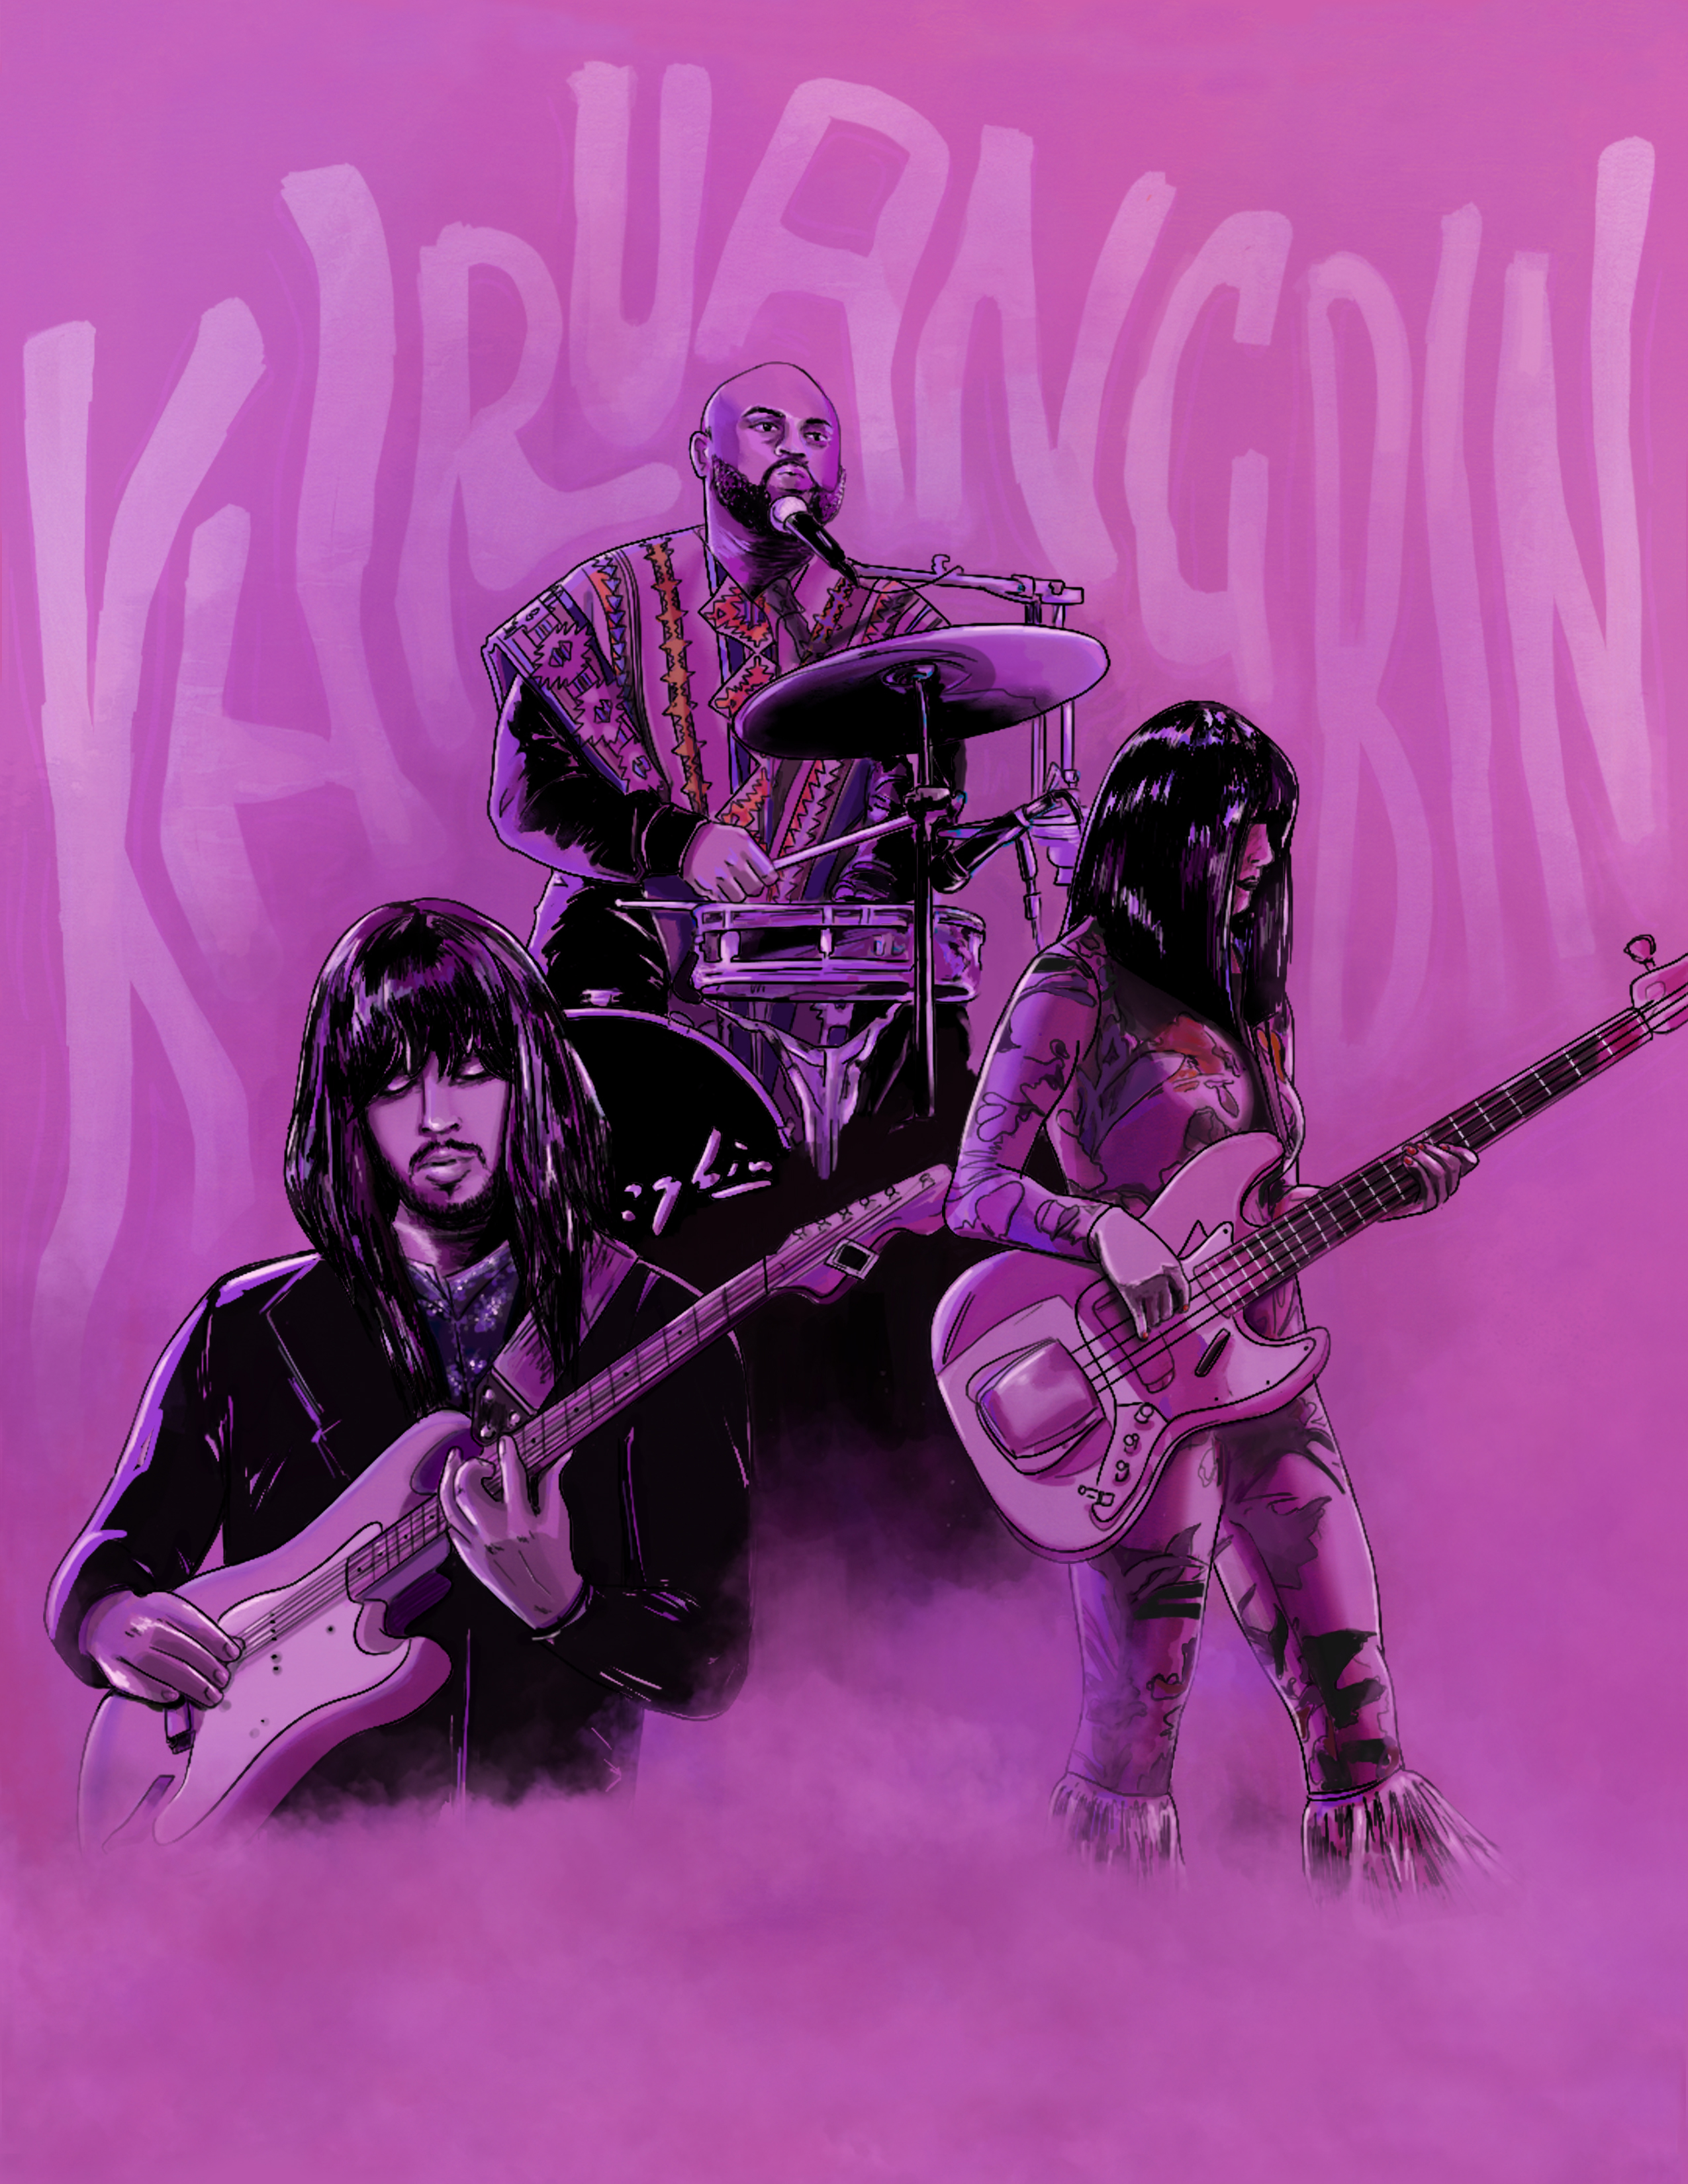 Illustration of trio band, Khruangbin with purple hue